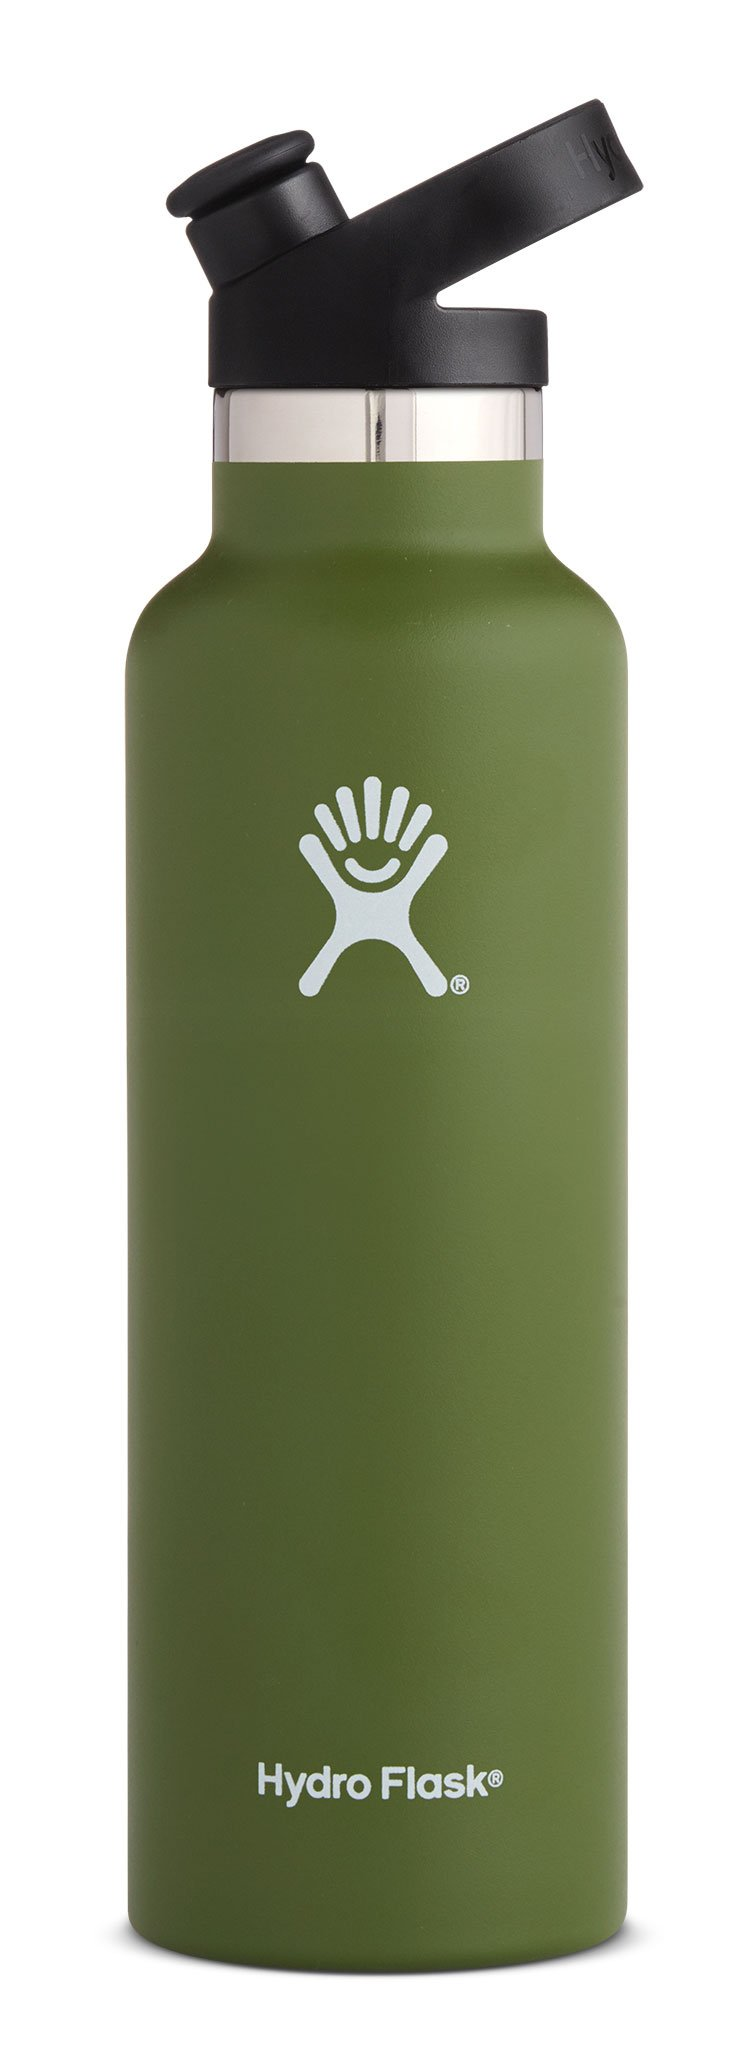 Hydro Flask 21 oz Double Wall Vacuum Insulated Stainless Steel Sports Water Bottle, Standard Mouth with BPA Free Sport Cap, Olive